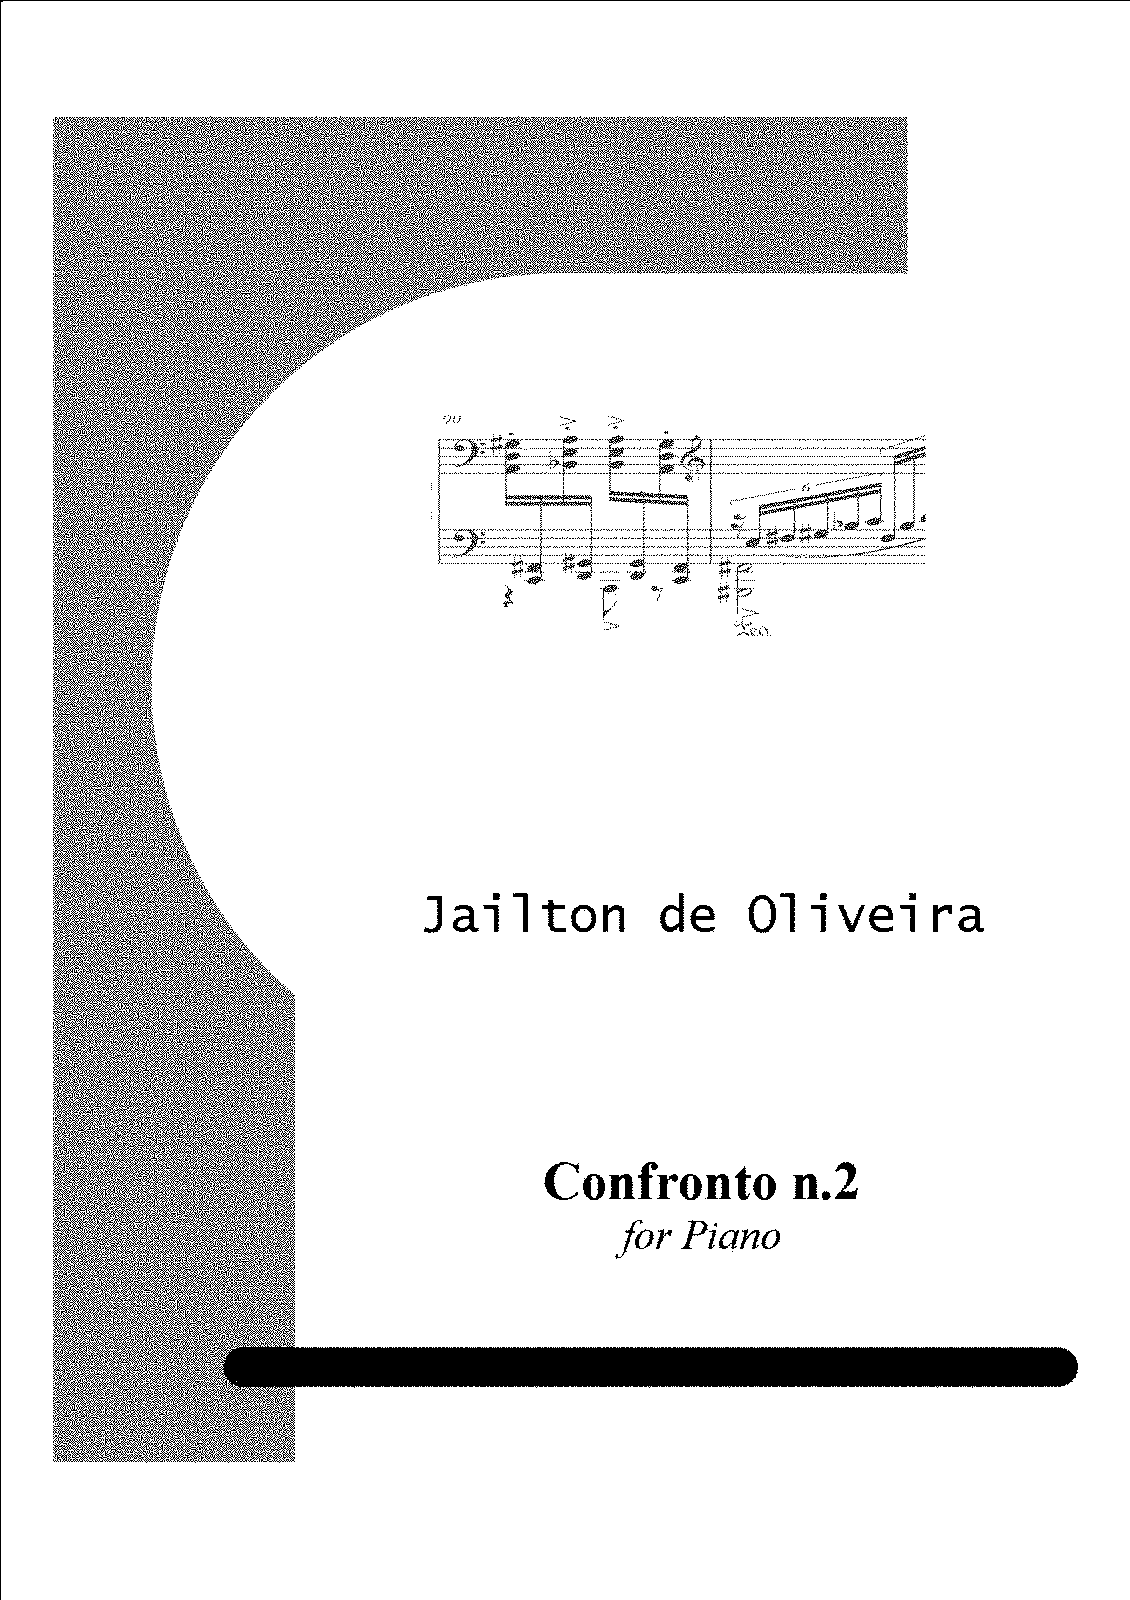 PMLP421036-confronto2 for piano.pdf